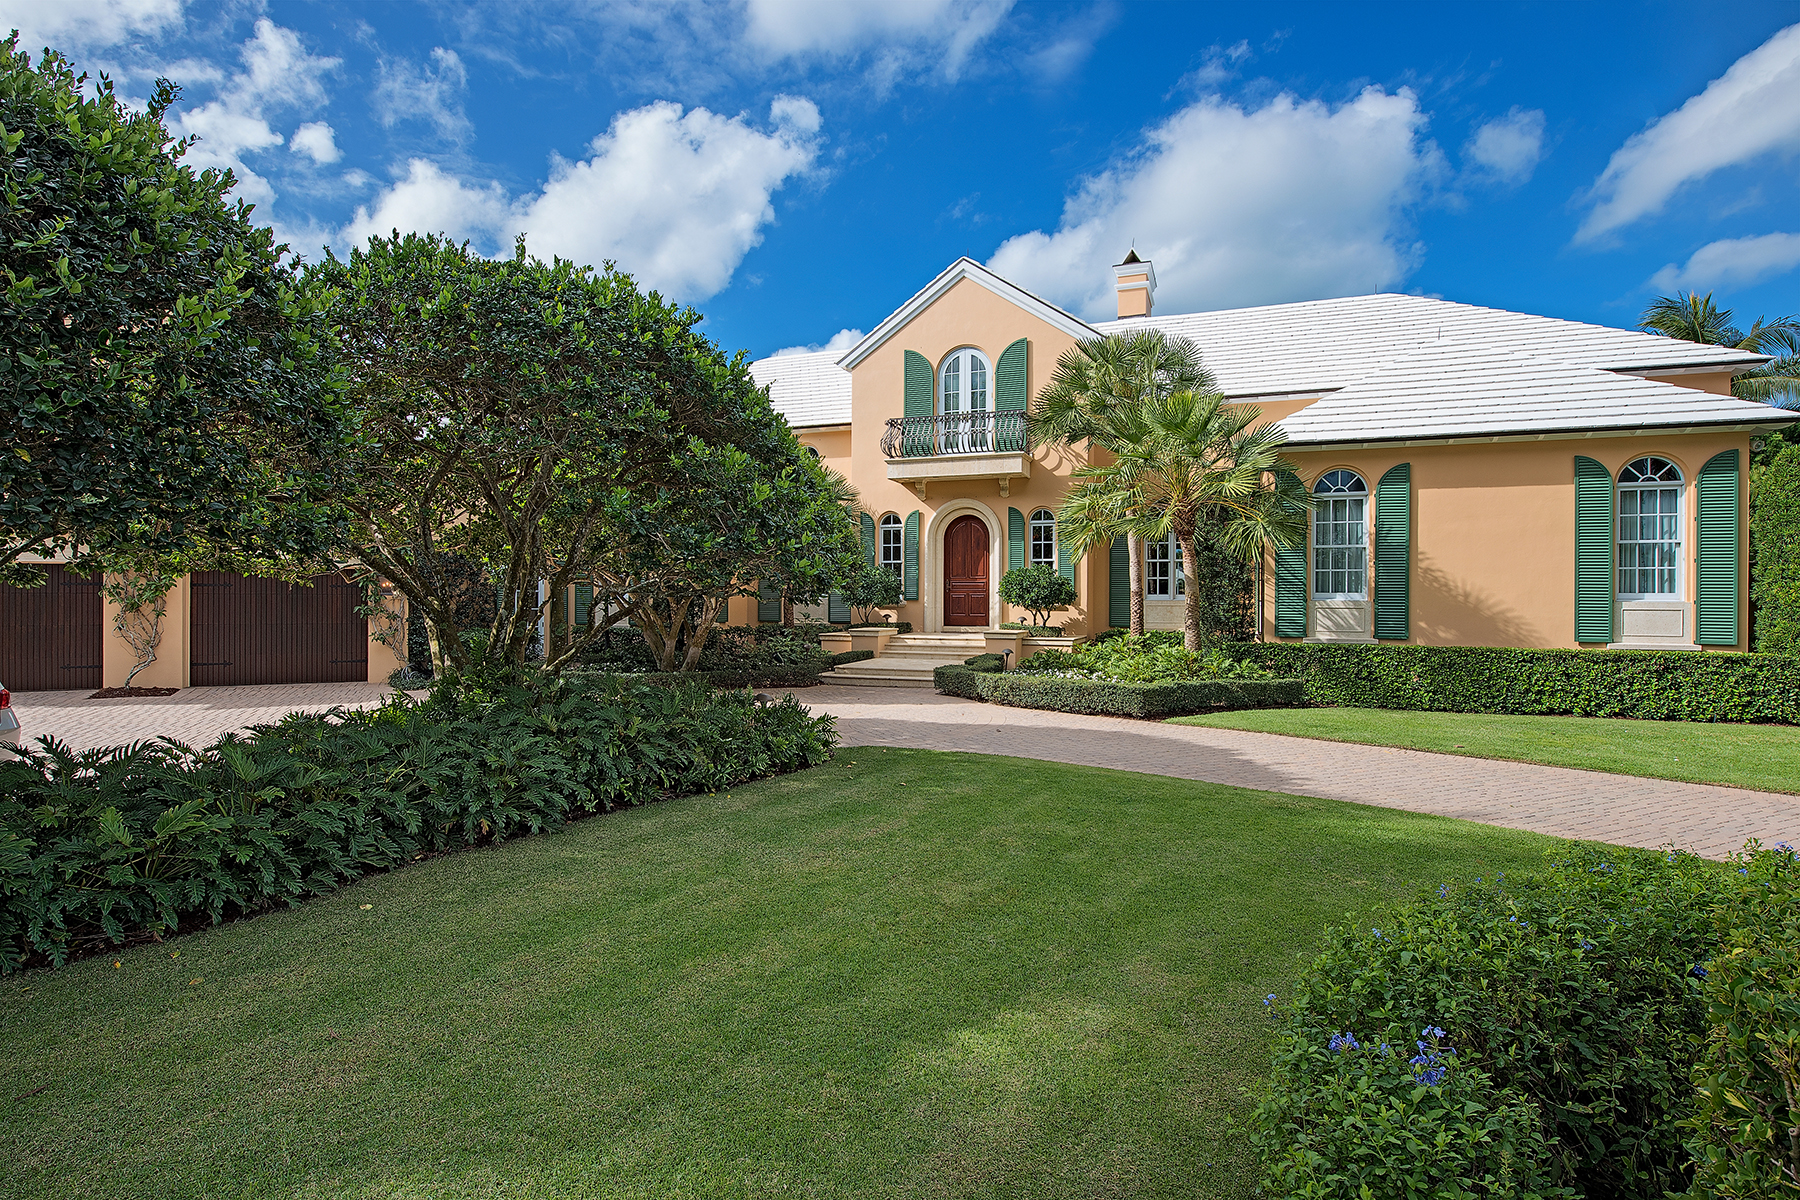 Single Family Home for Sale at PORT ROYAL 1212 Spyglass Ln Port Royal, Naples, Florida, 34102 United States